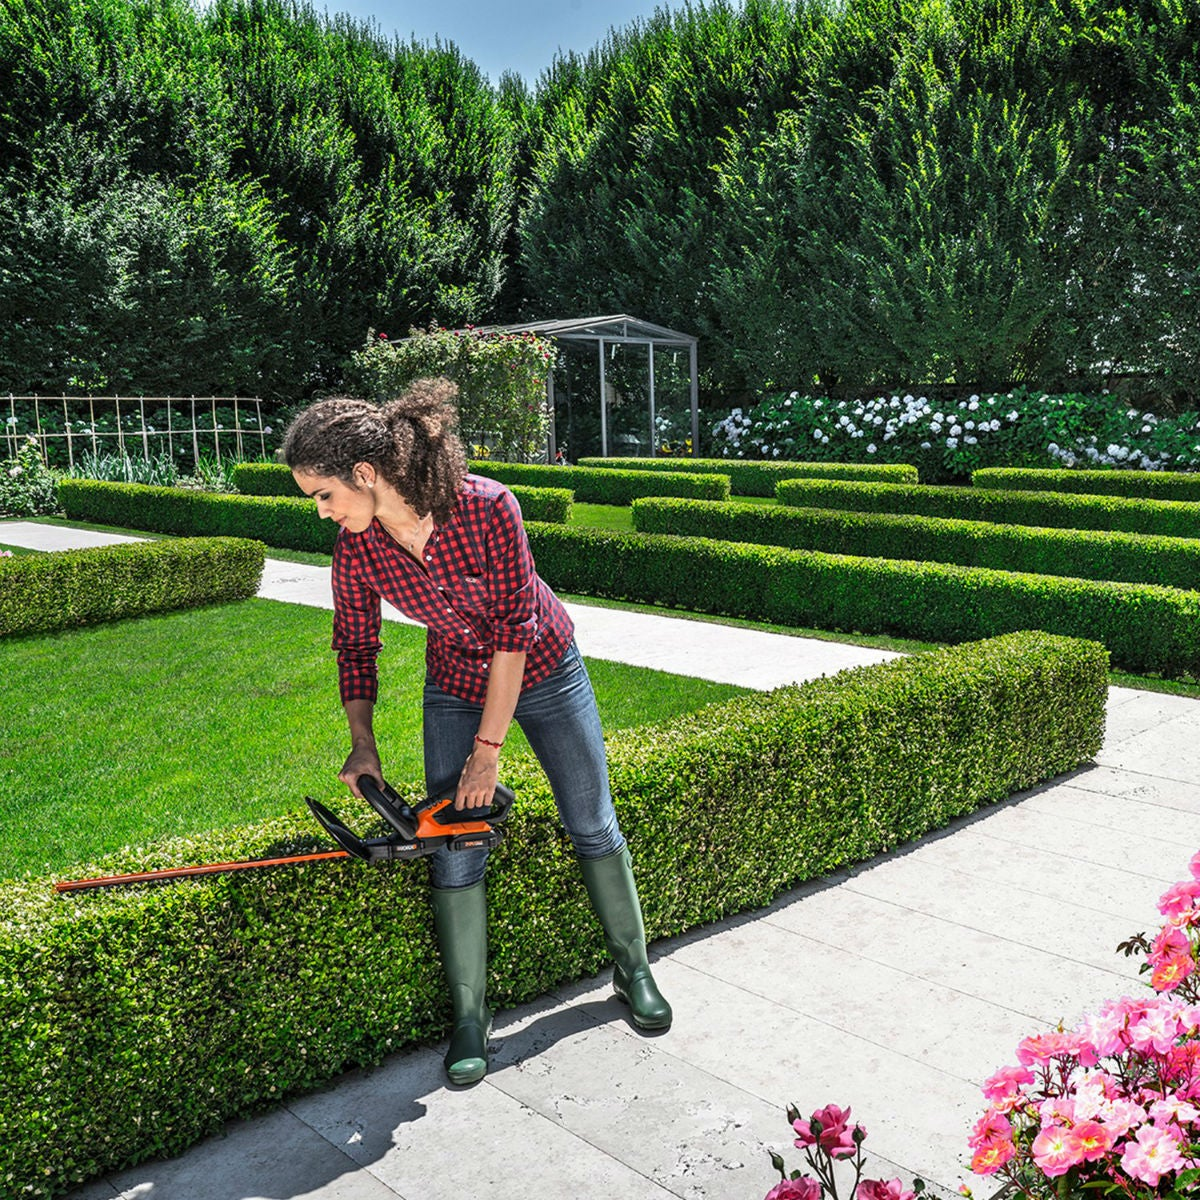 Best Hedge Trimmer: Worx